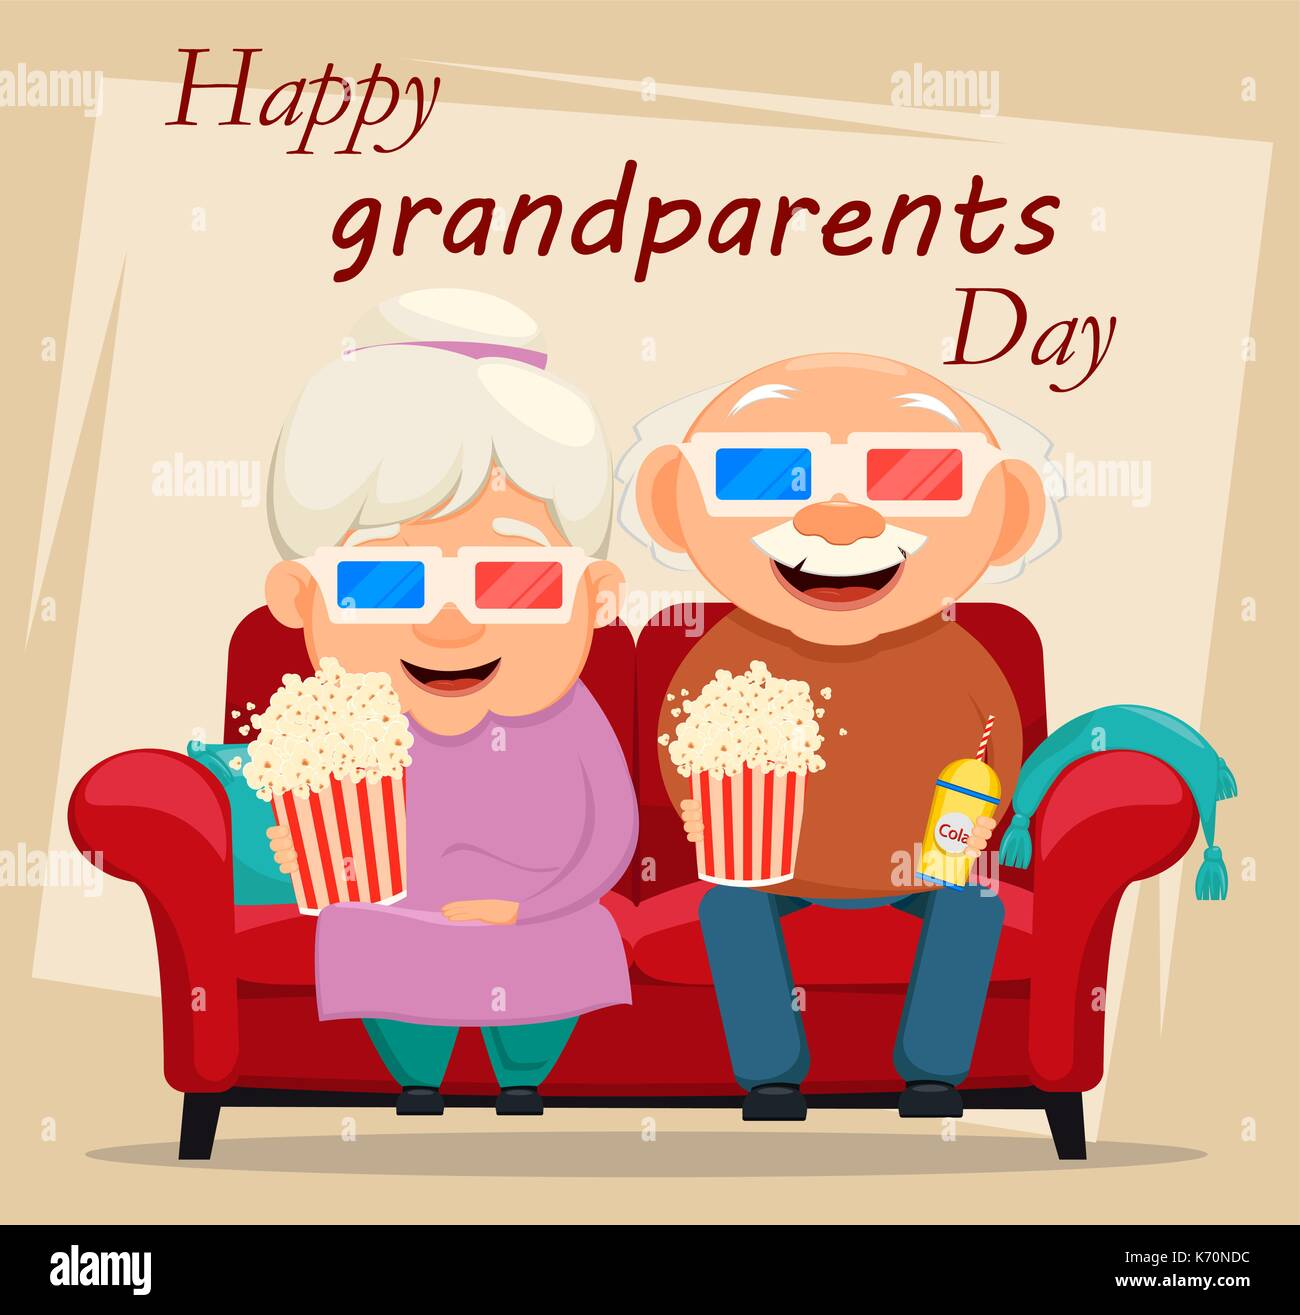 Grandparents day greeting card grandmother and grandfather watching grandparents day greeting card grandmother and grandfather watching movie at home vector illustration on light background m4hsunfo